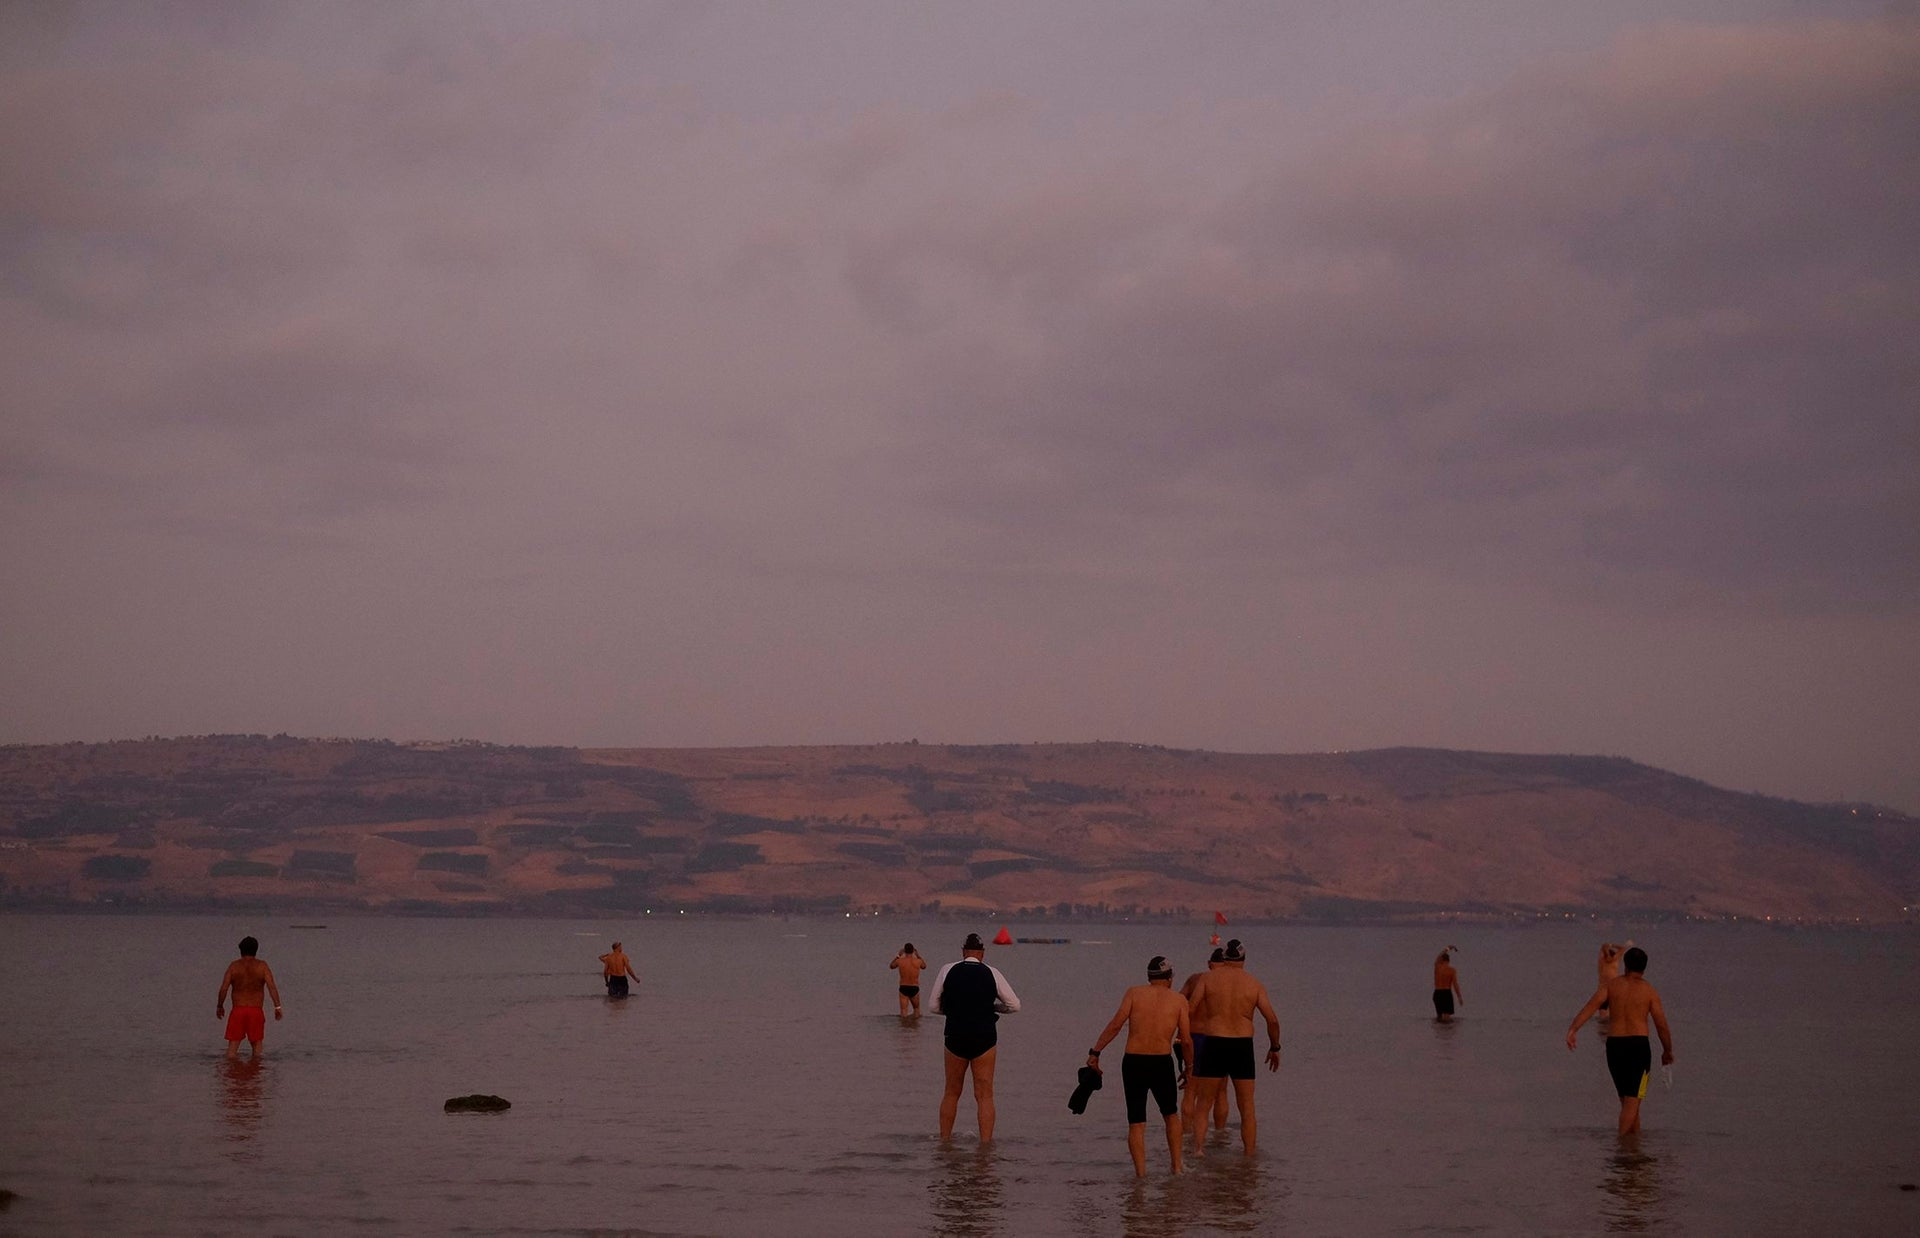 Swimmers participate in the annual Sea of Galilee swim, the oldest and largest popular swimming event, near Tiberias, northern Israel, Saturday, Sept. 16, 2017.